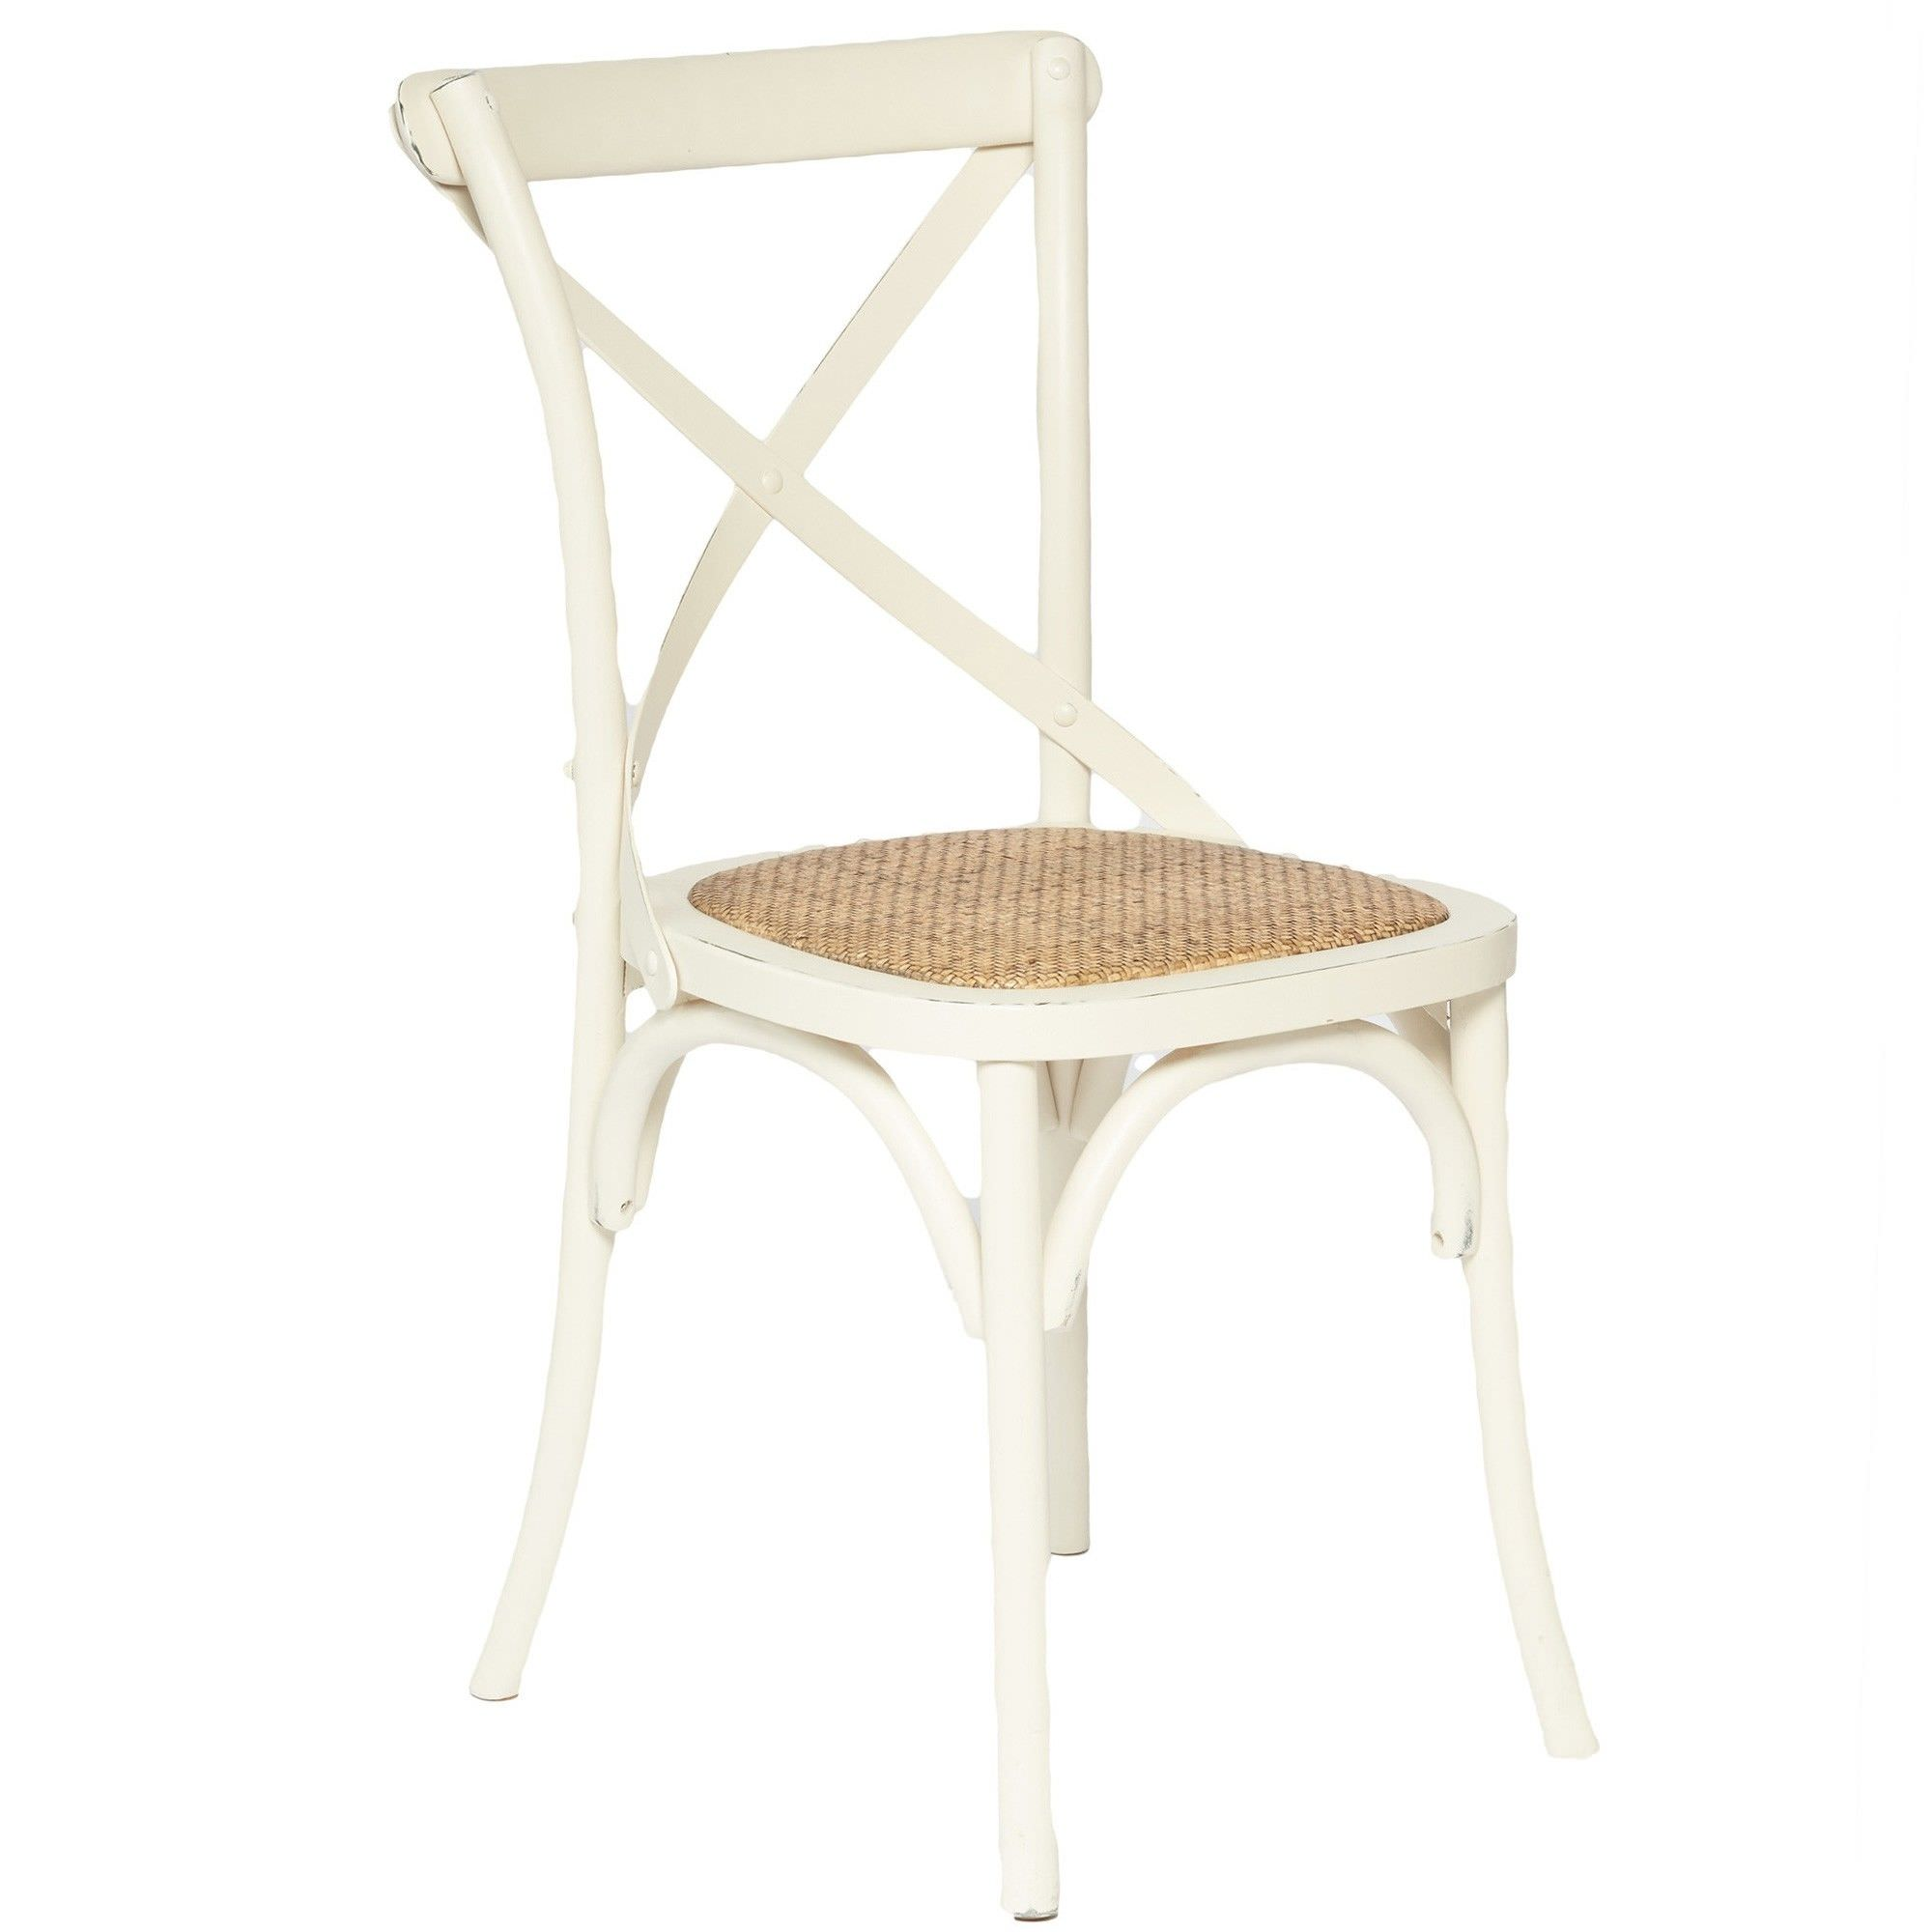 Sherwood Solid Oak Timber Cross Back Dining Chair with Rattan Seat - Distressed White